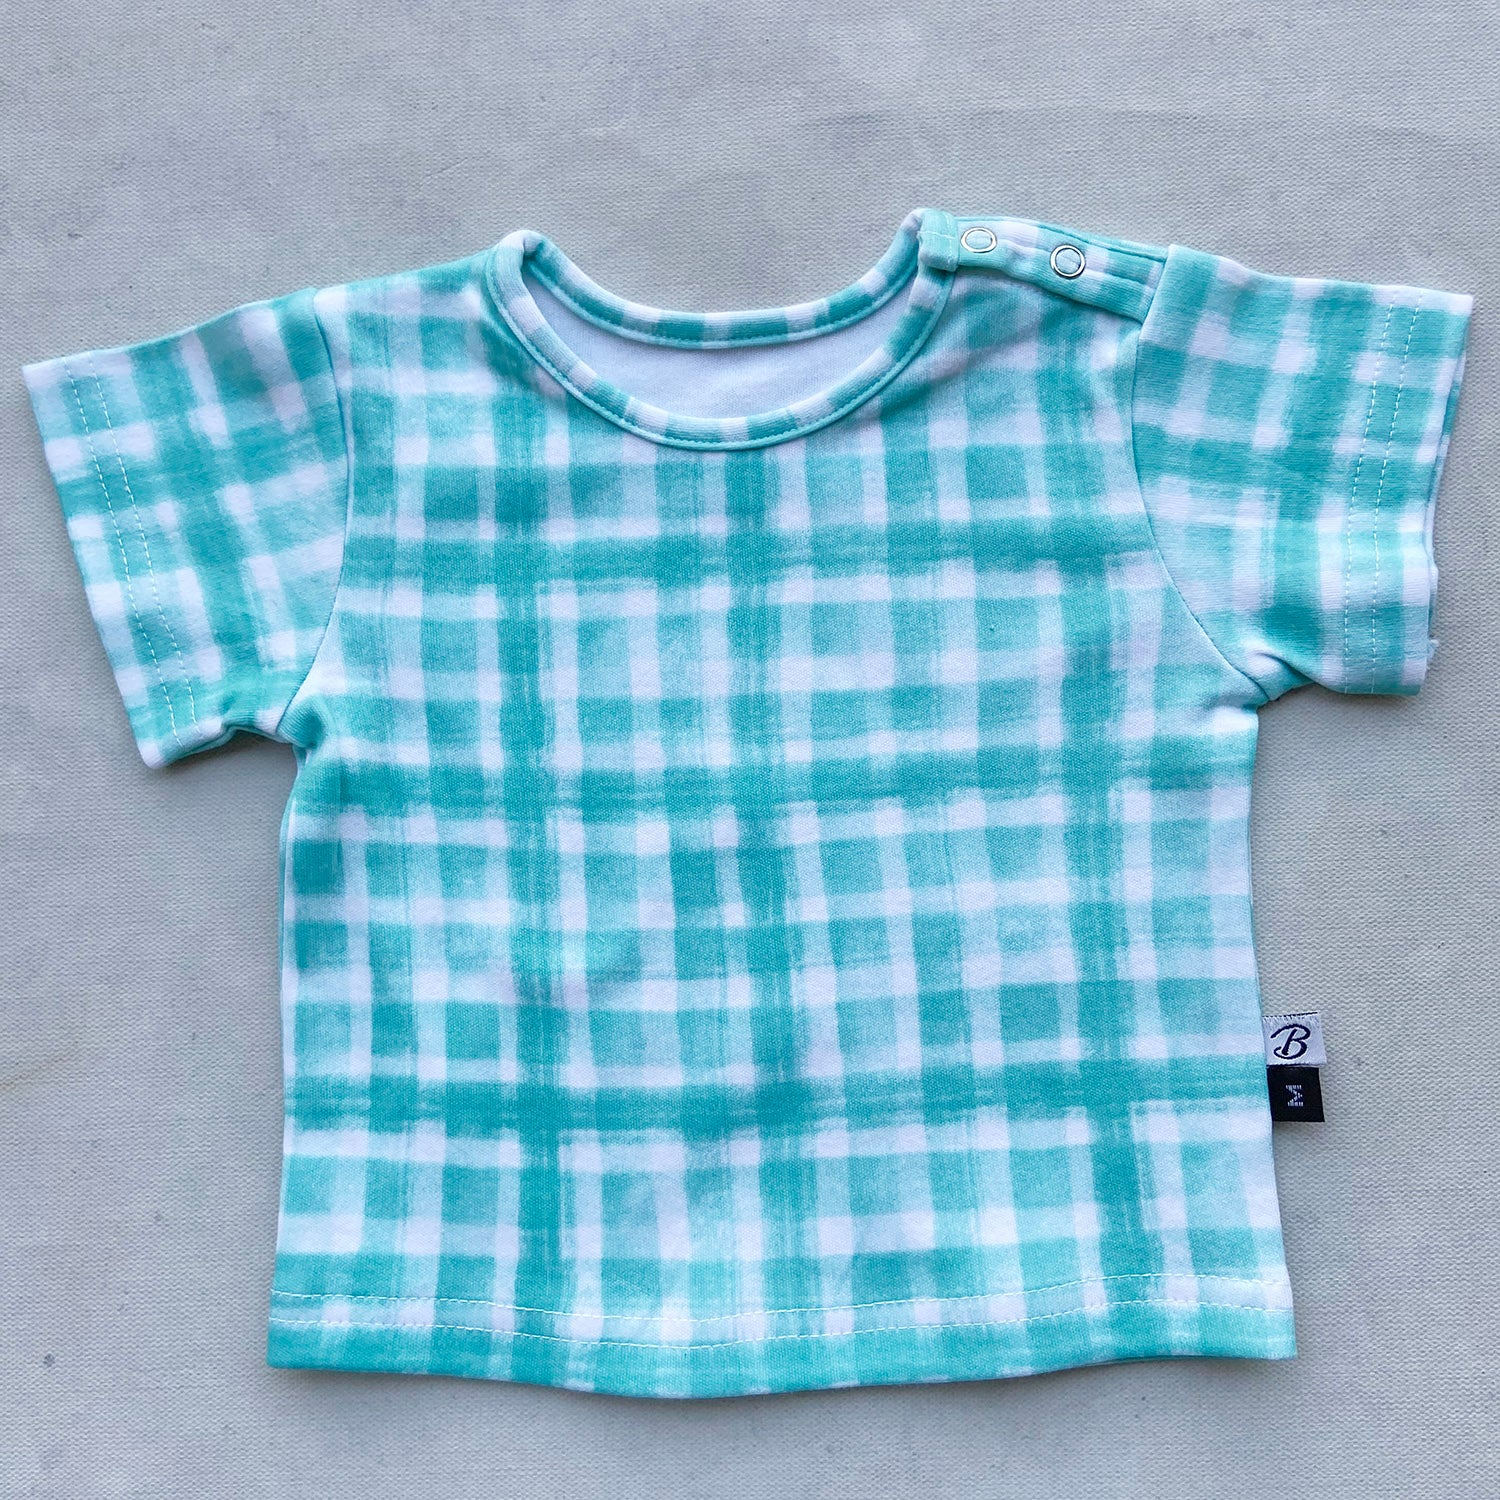 Organic Cotton CuTee - Mint Squares